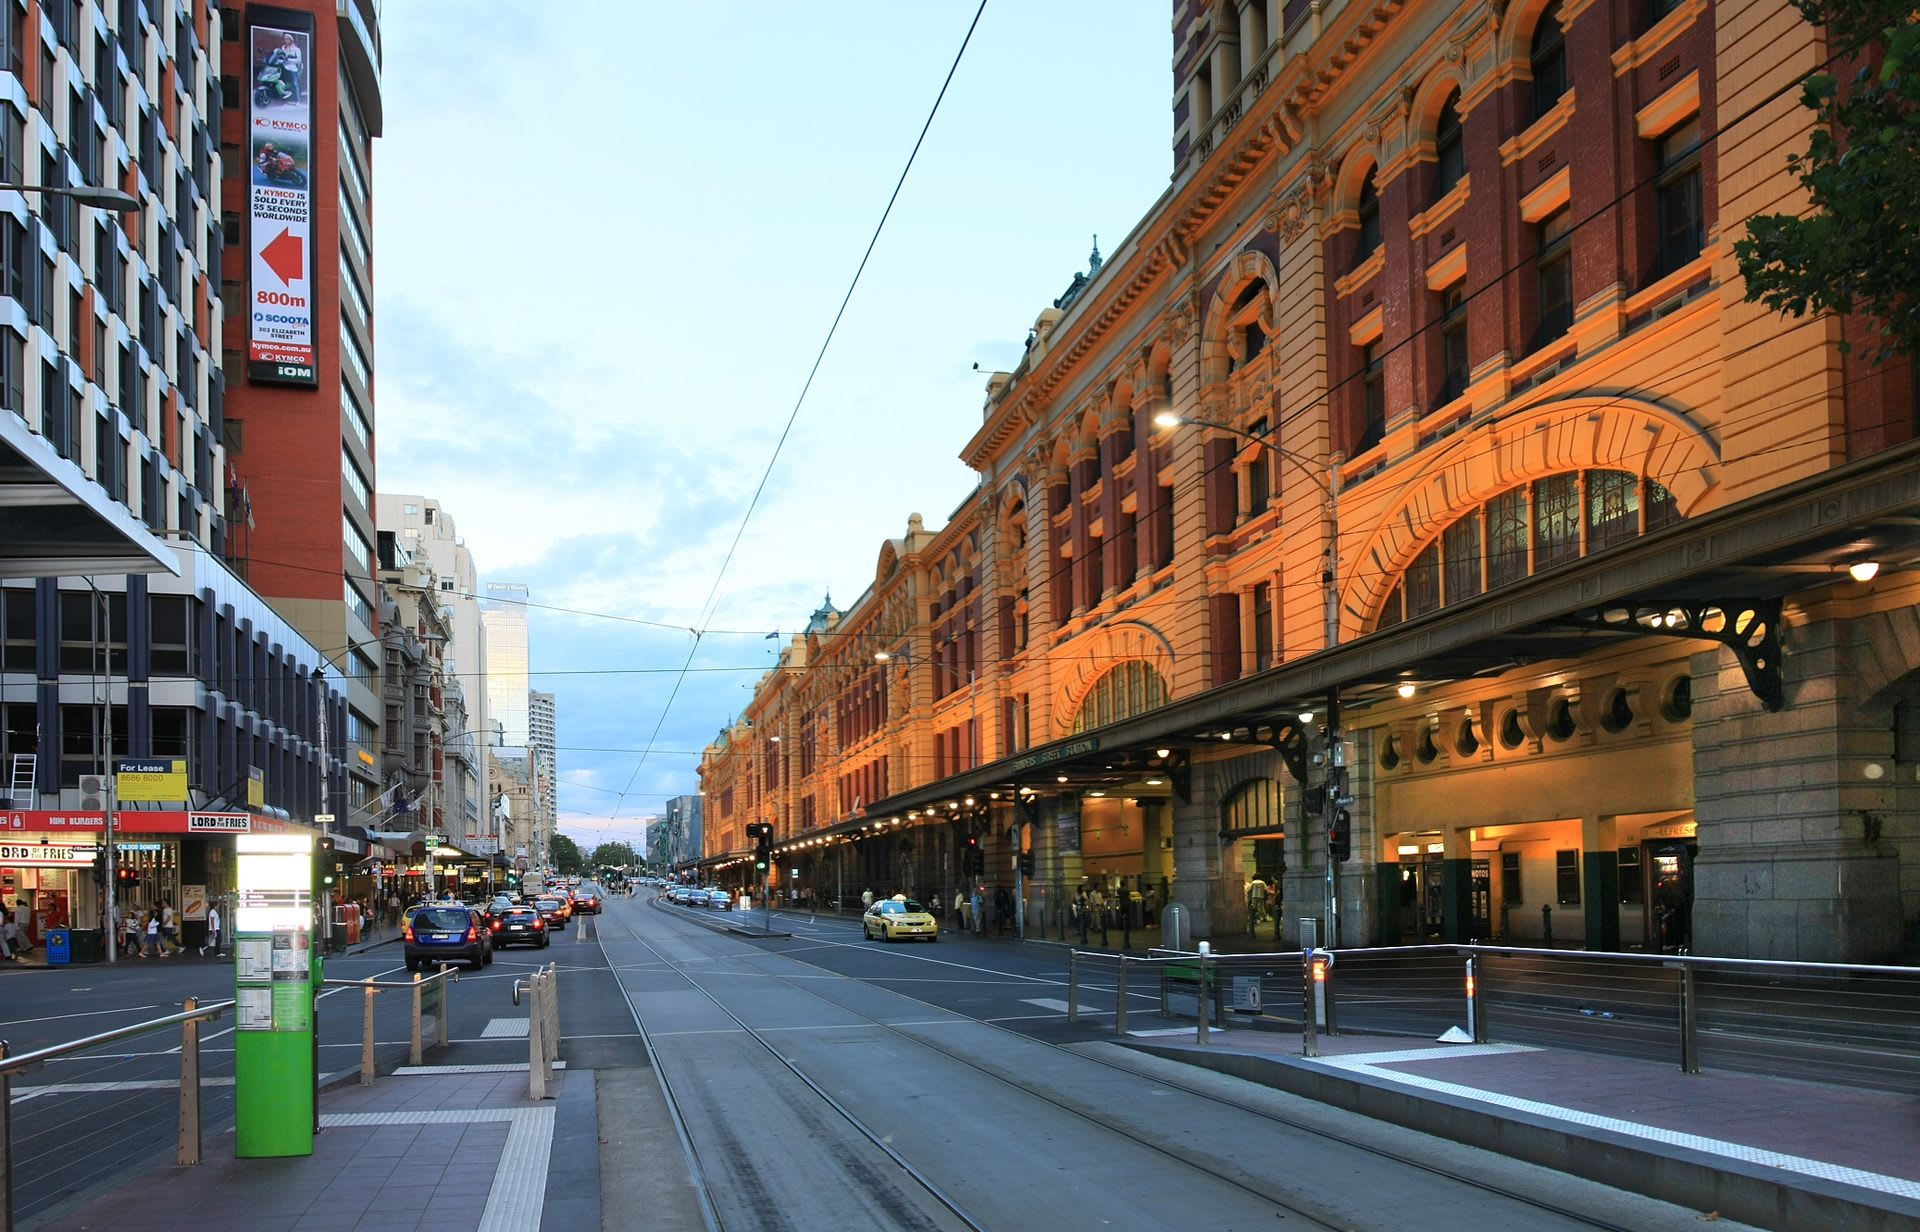 What is a road? A solar farm? A Cafe? A Live music venue? Victoria seeks input on planning scheme land use terms and definitions